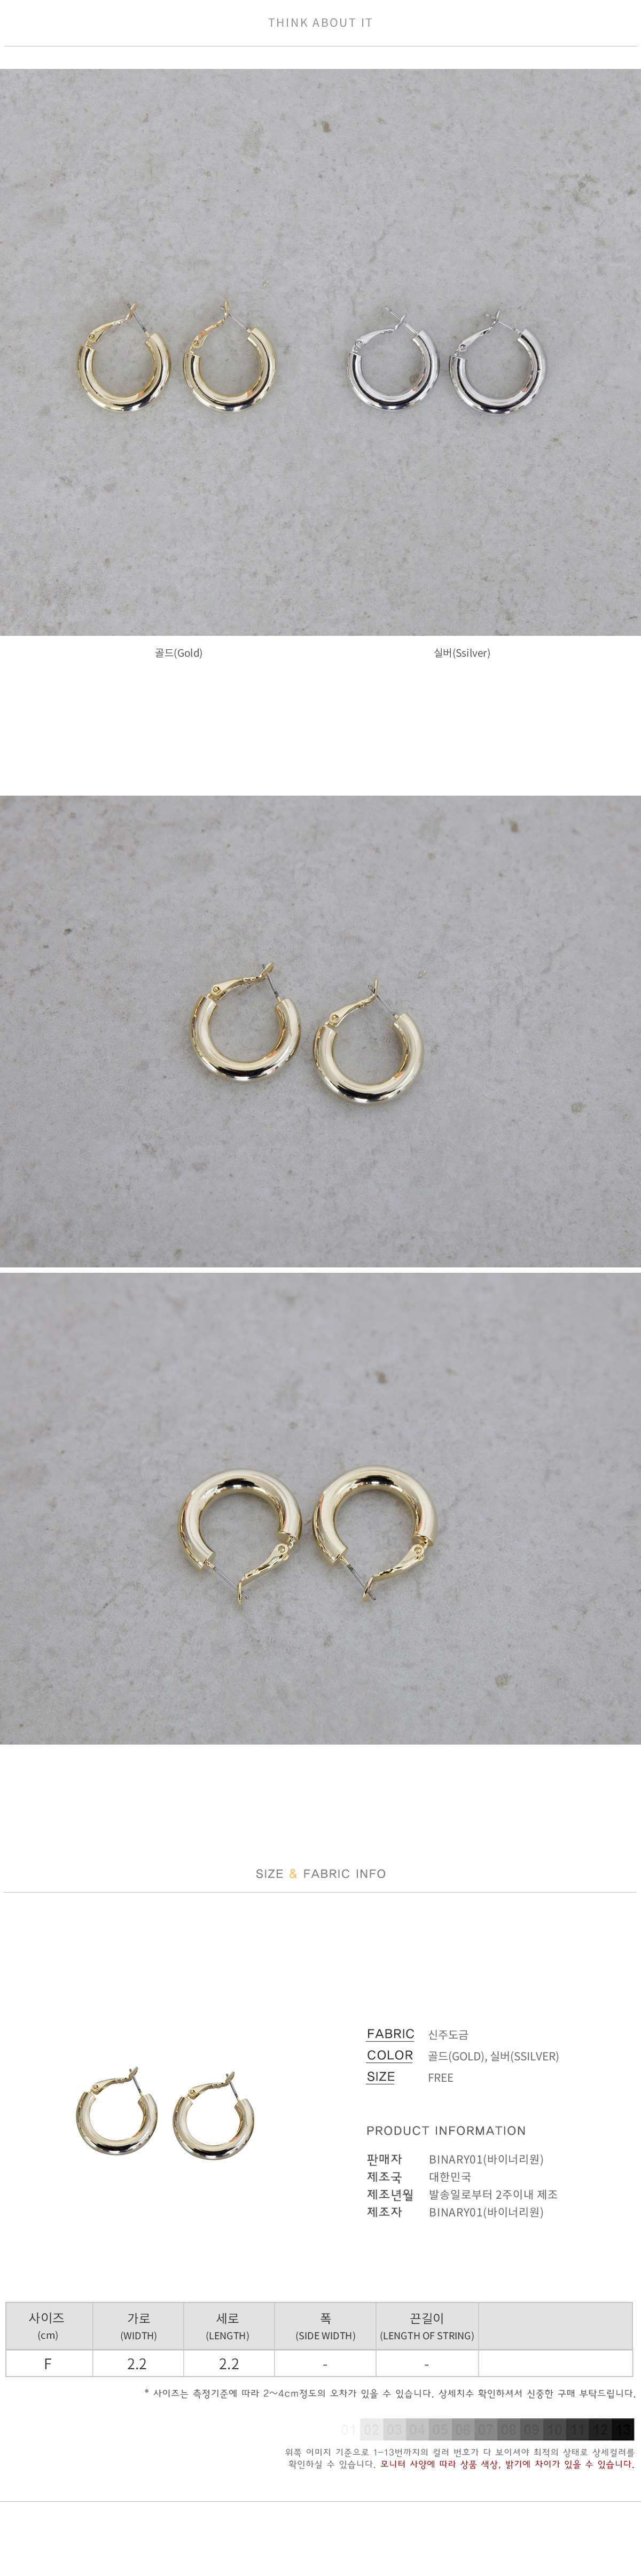 Lojin ring earrings